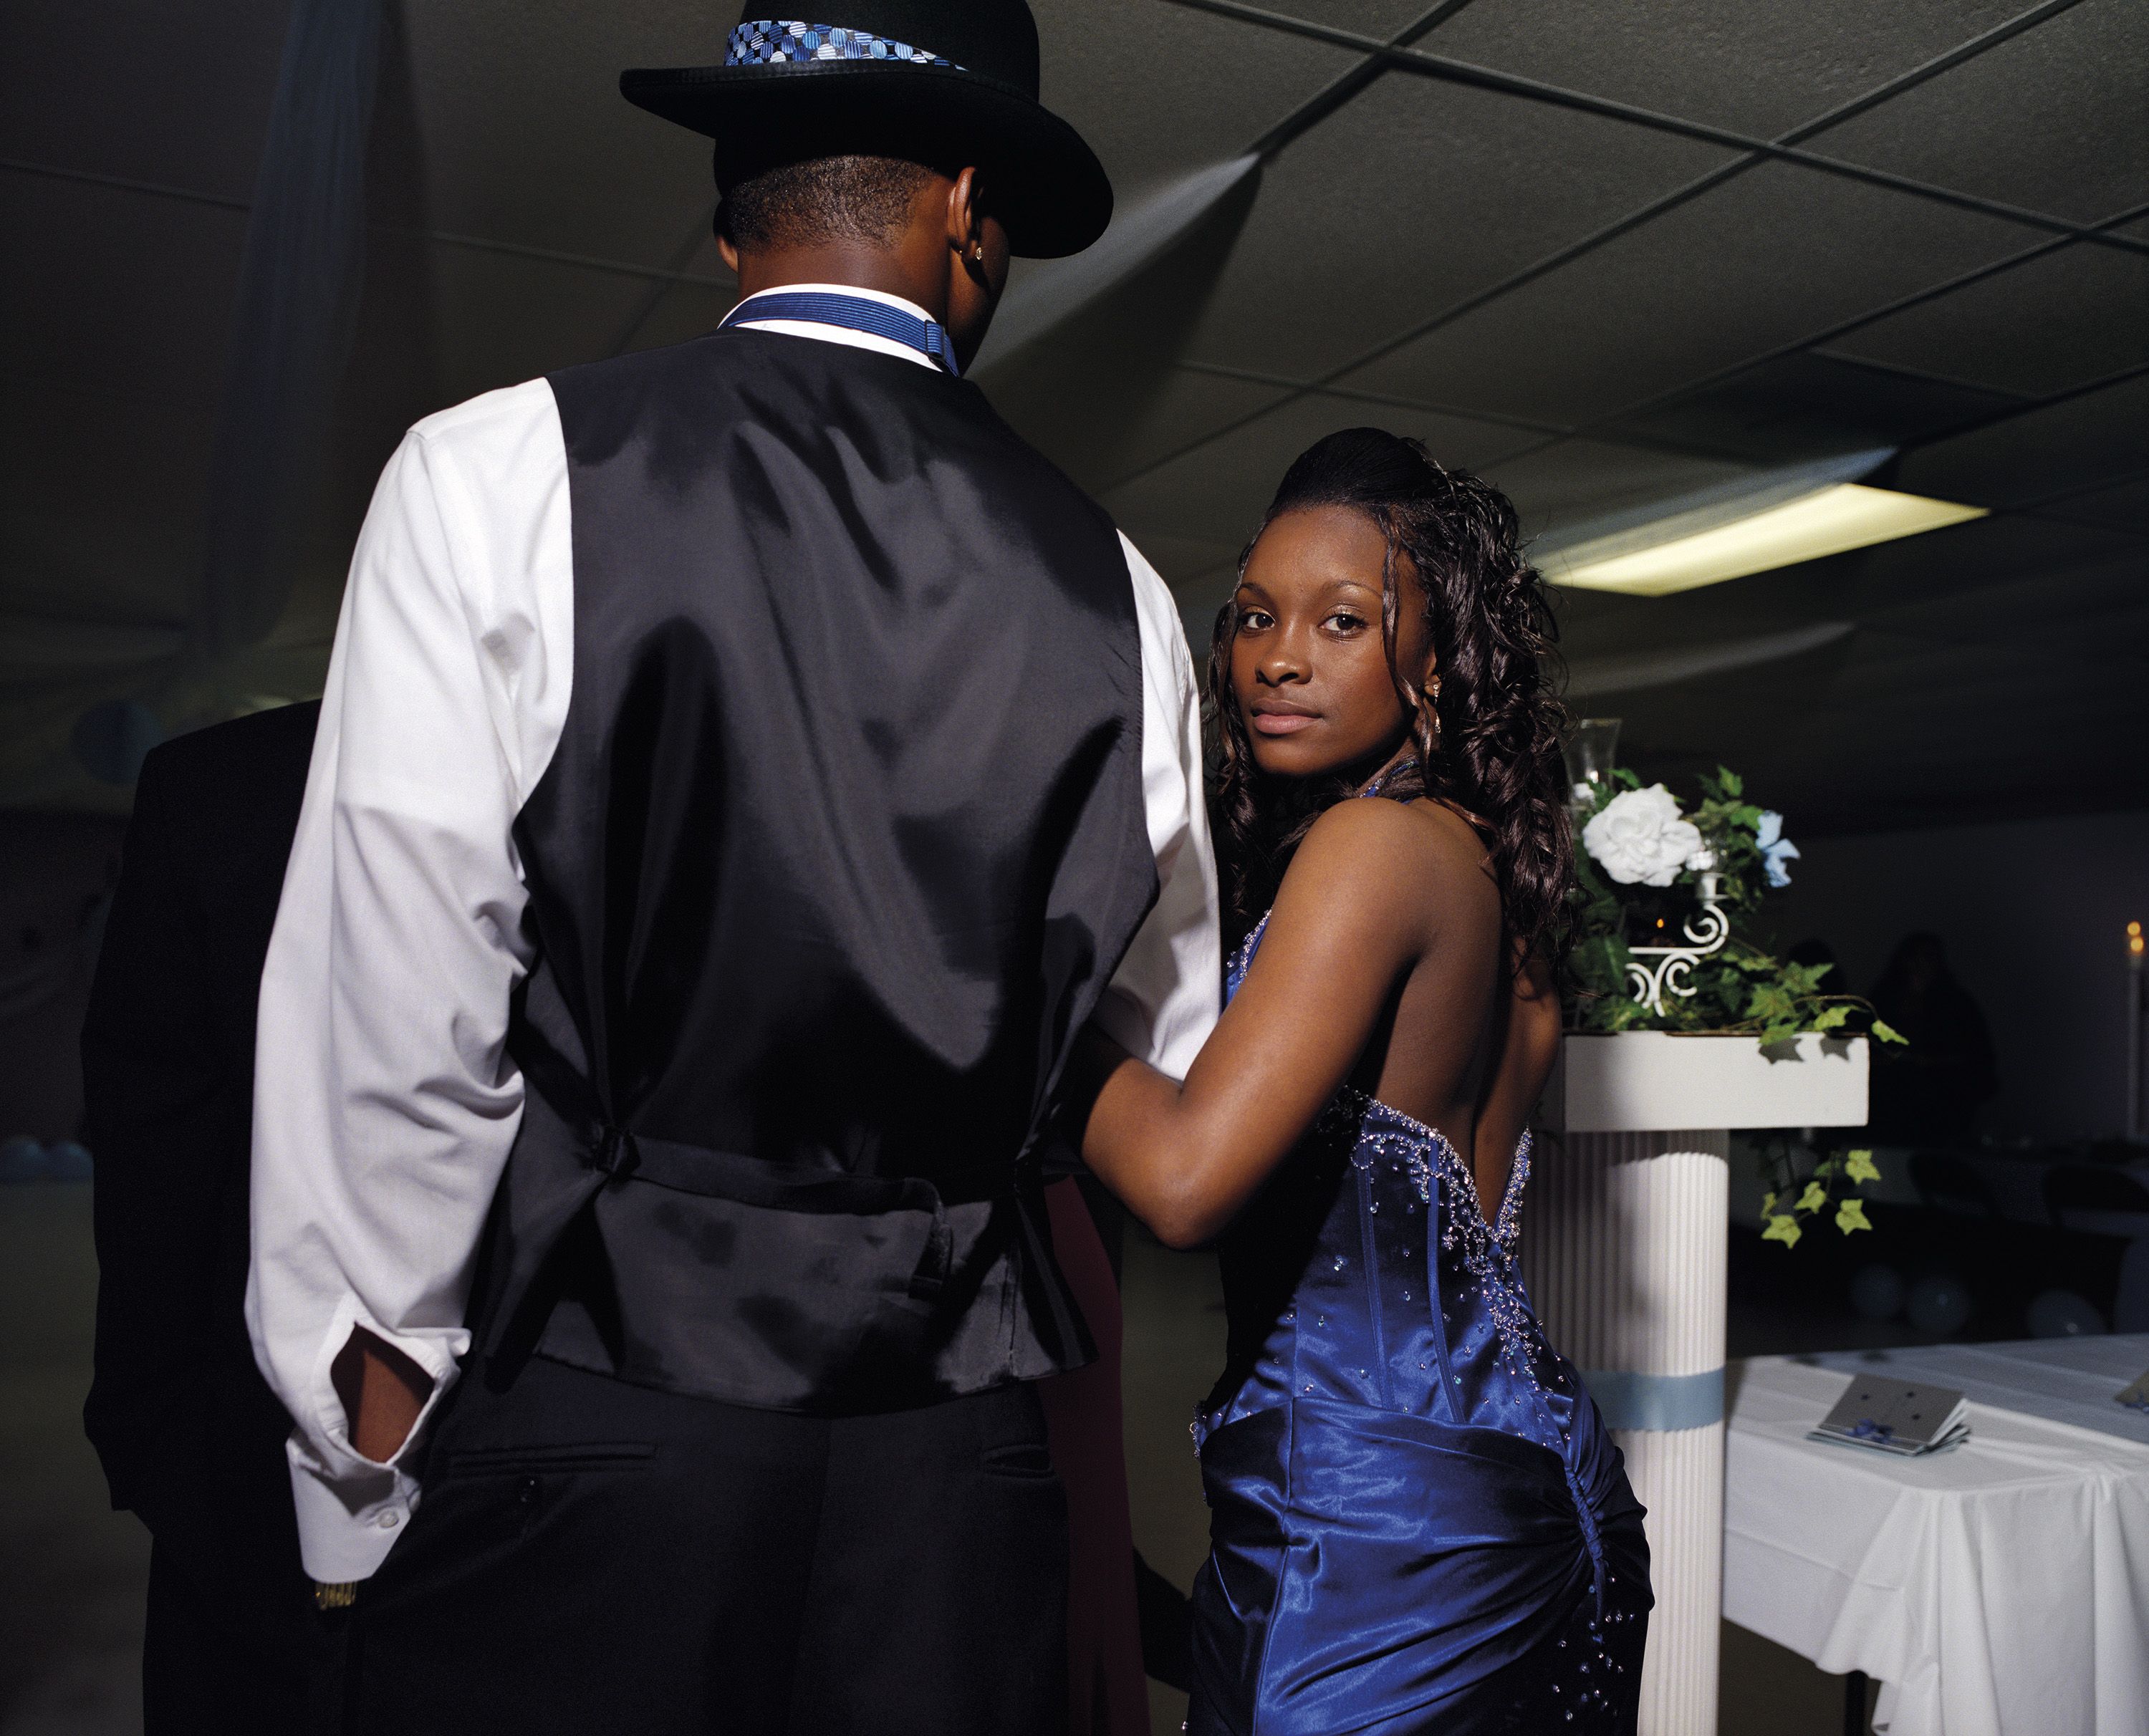 Keyke and Terrance entering the black prom, 2008